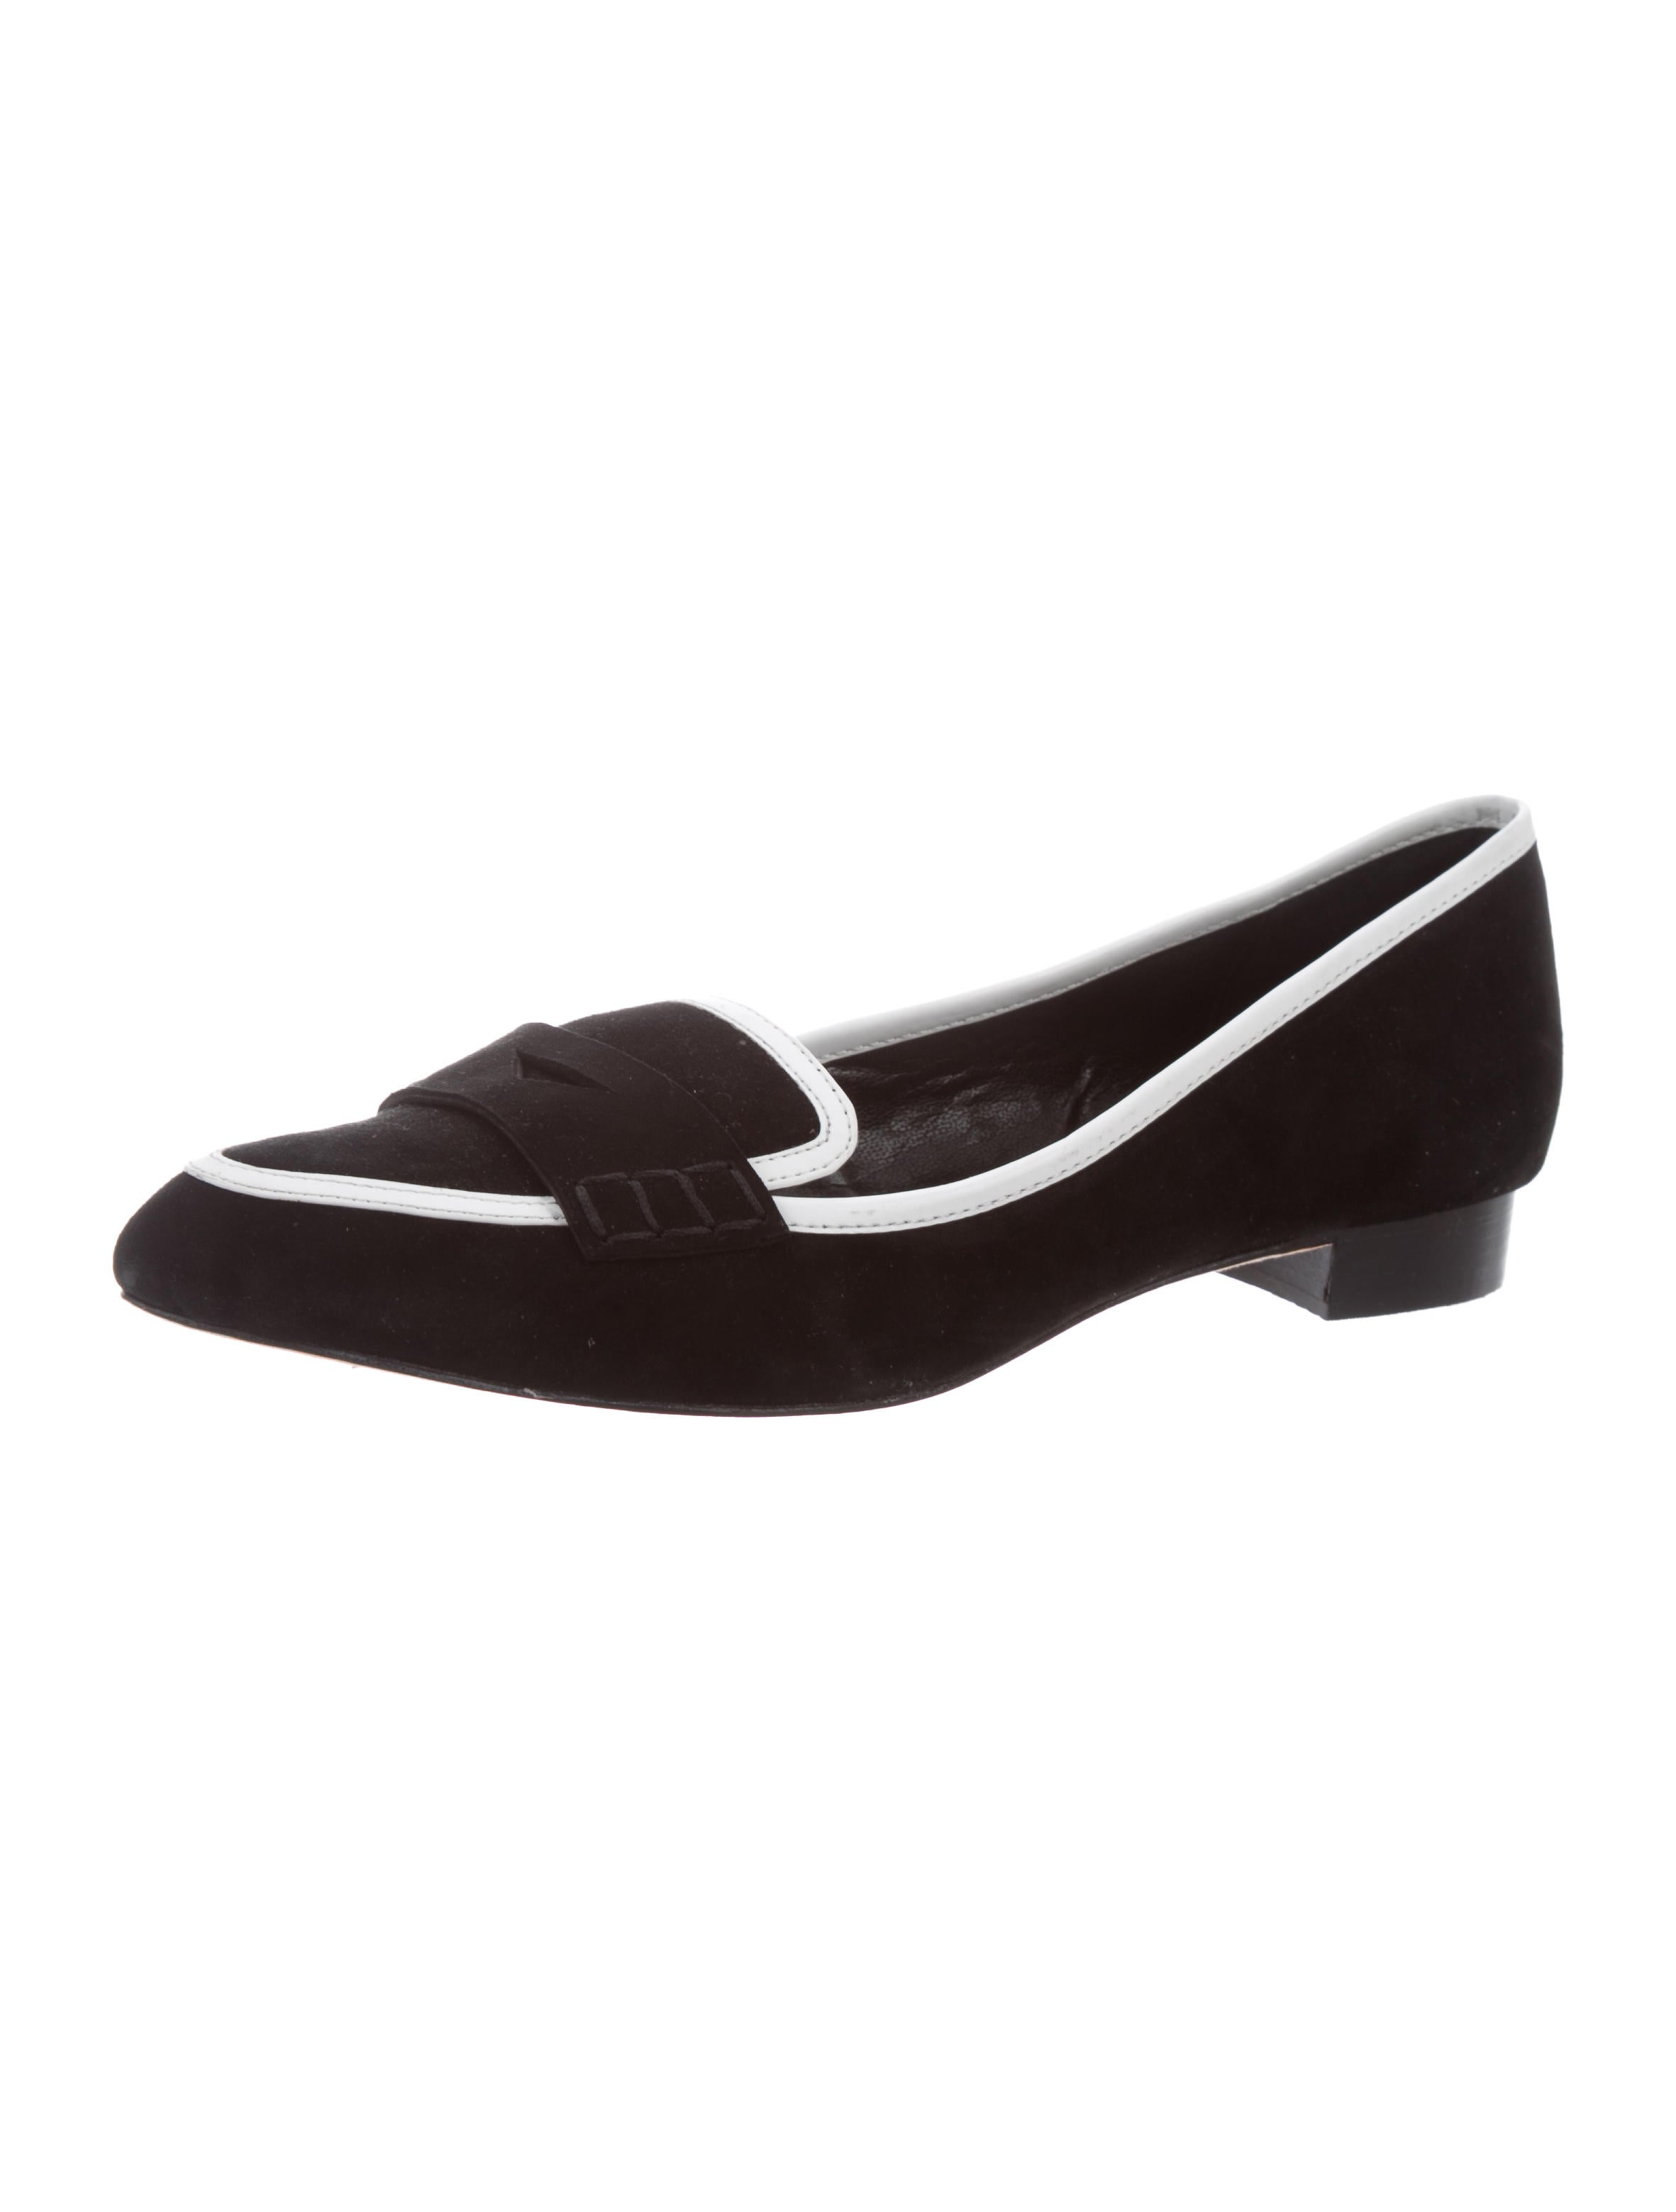 purchase cheap price sale new Alice + Olivia Pointed-Toe Penny Loafers supply cheap online clearance footlocker from china low shipping fee VJDAtFM